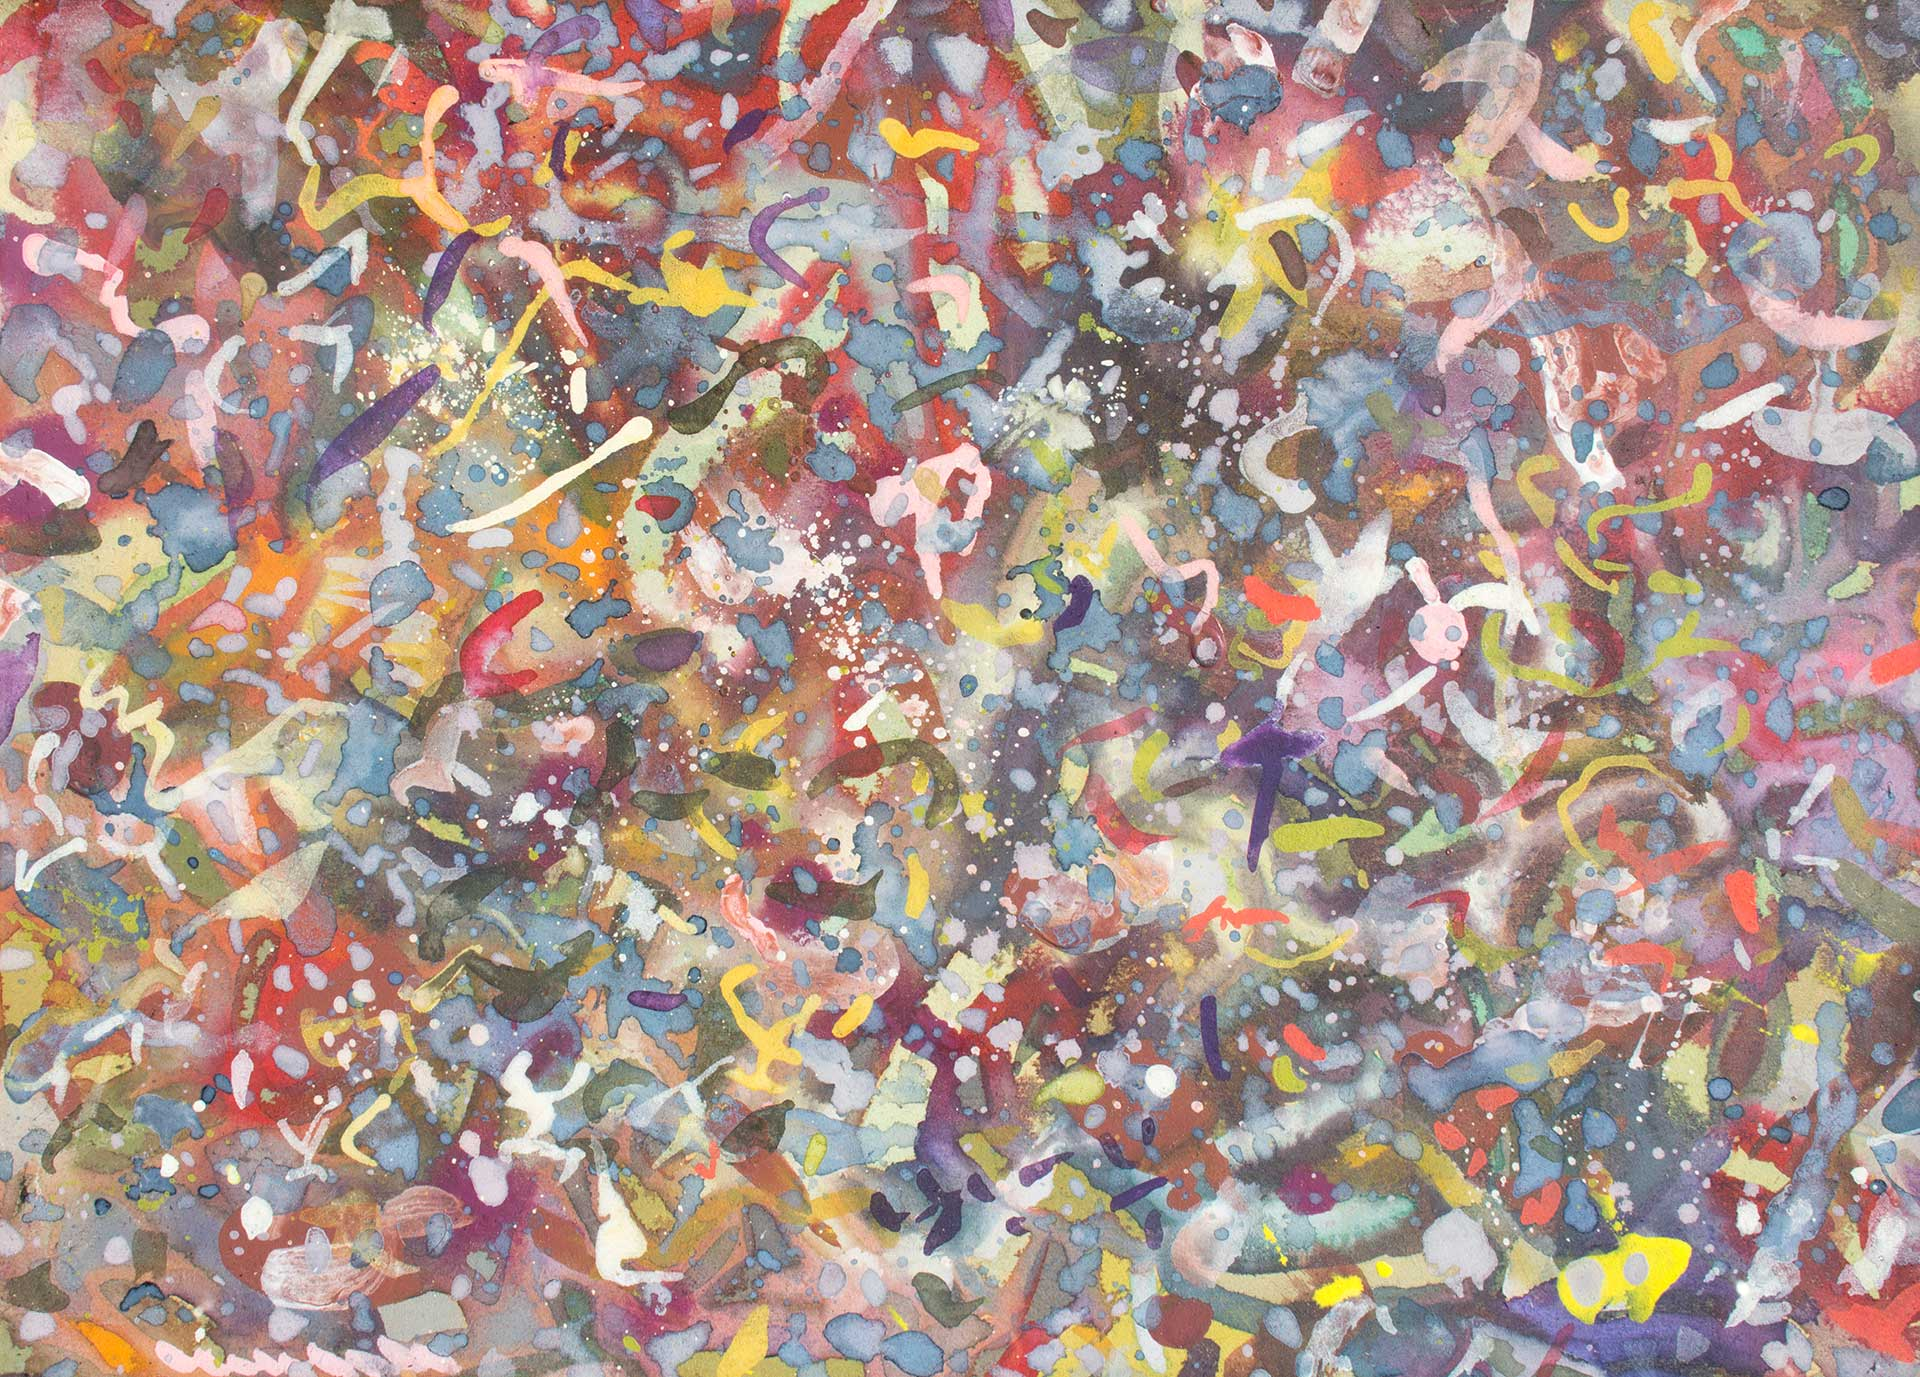 Abstract expressionism painting - Dangerous dancers